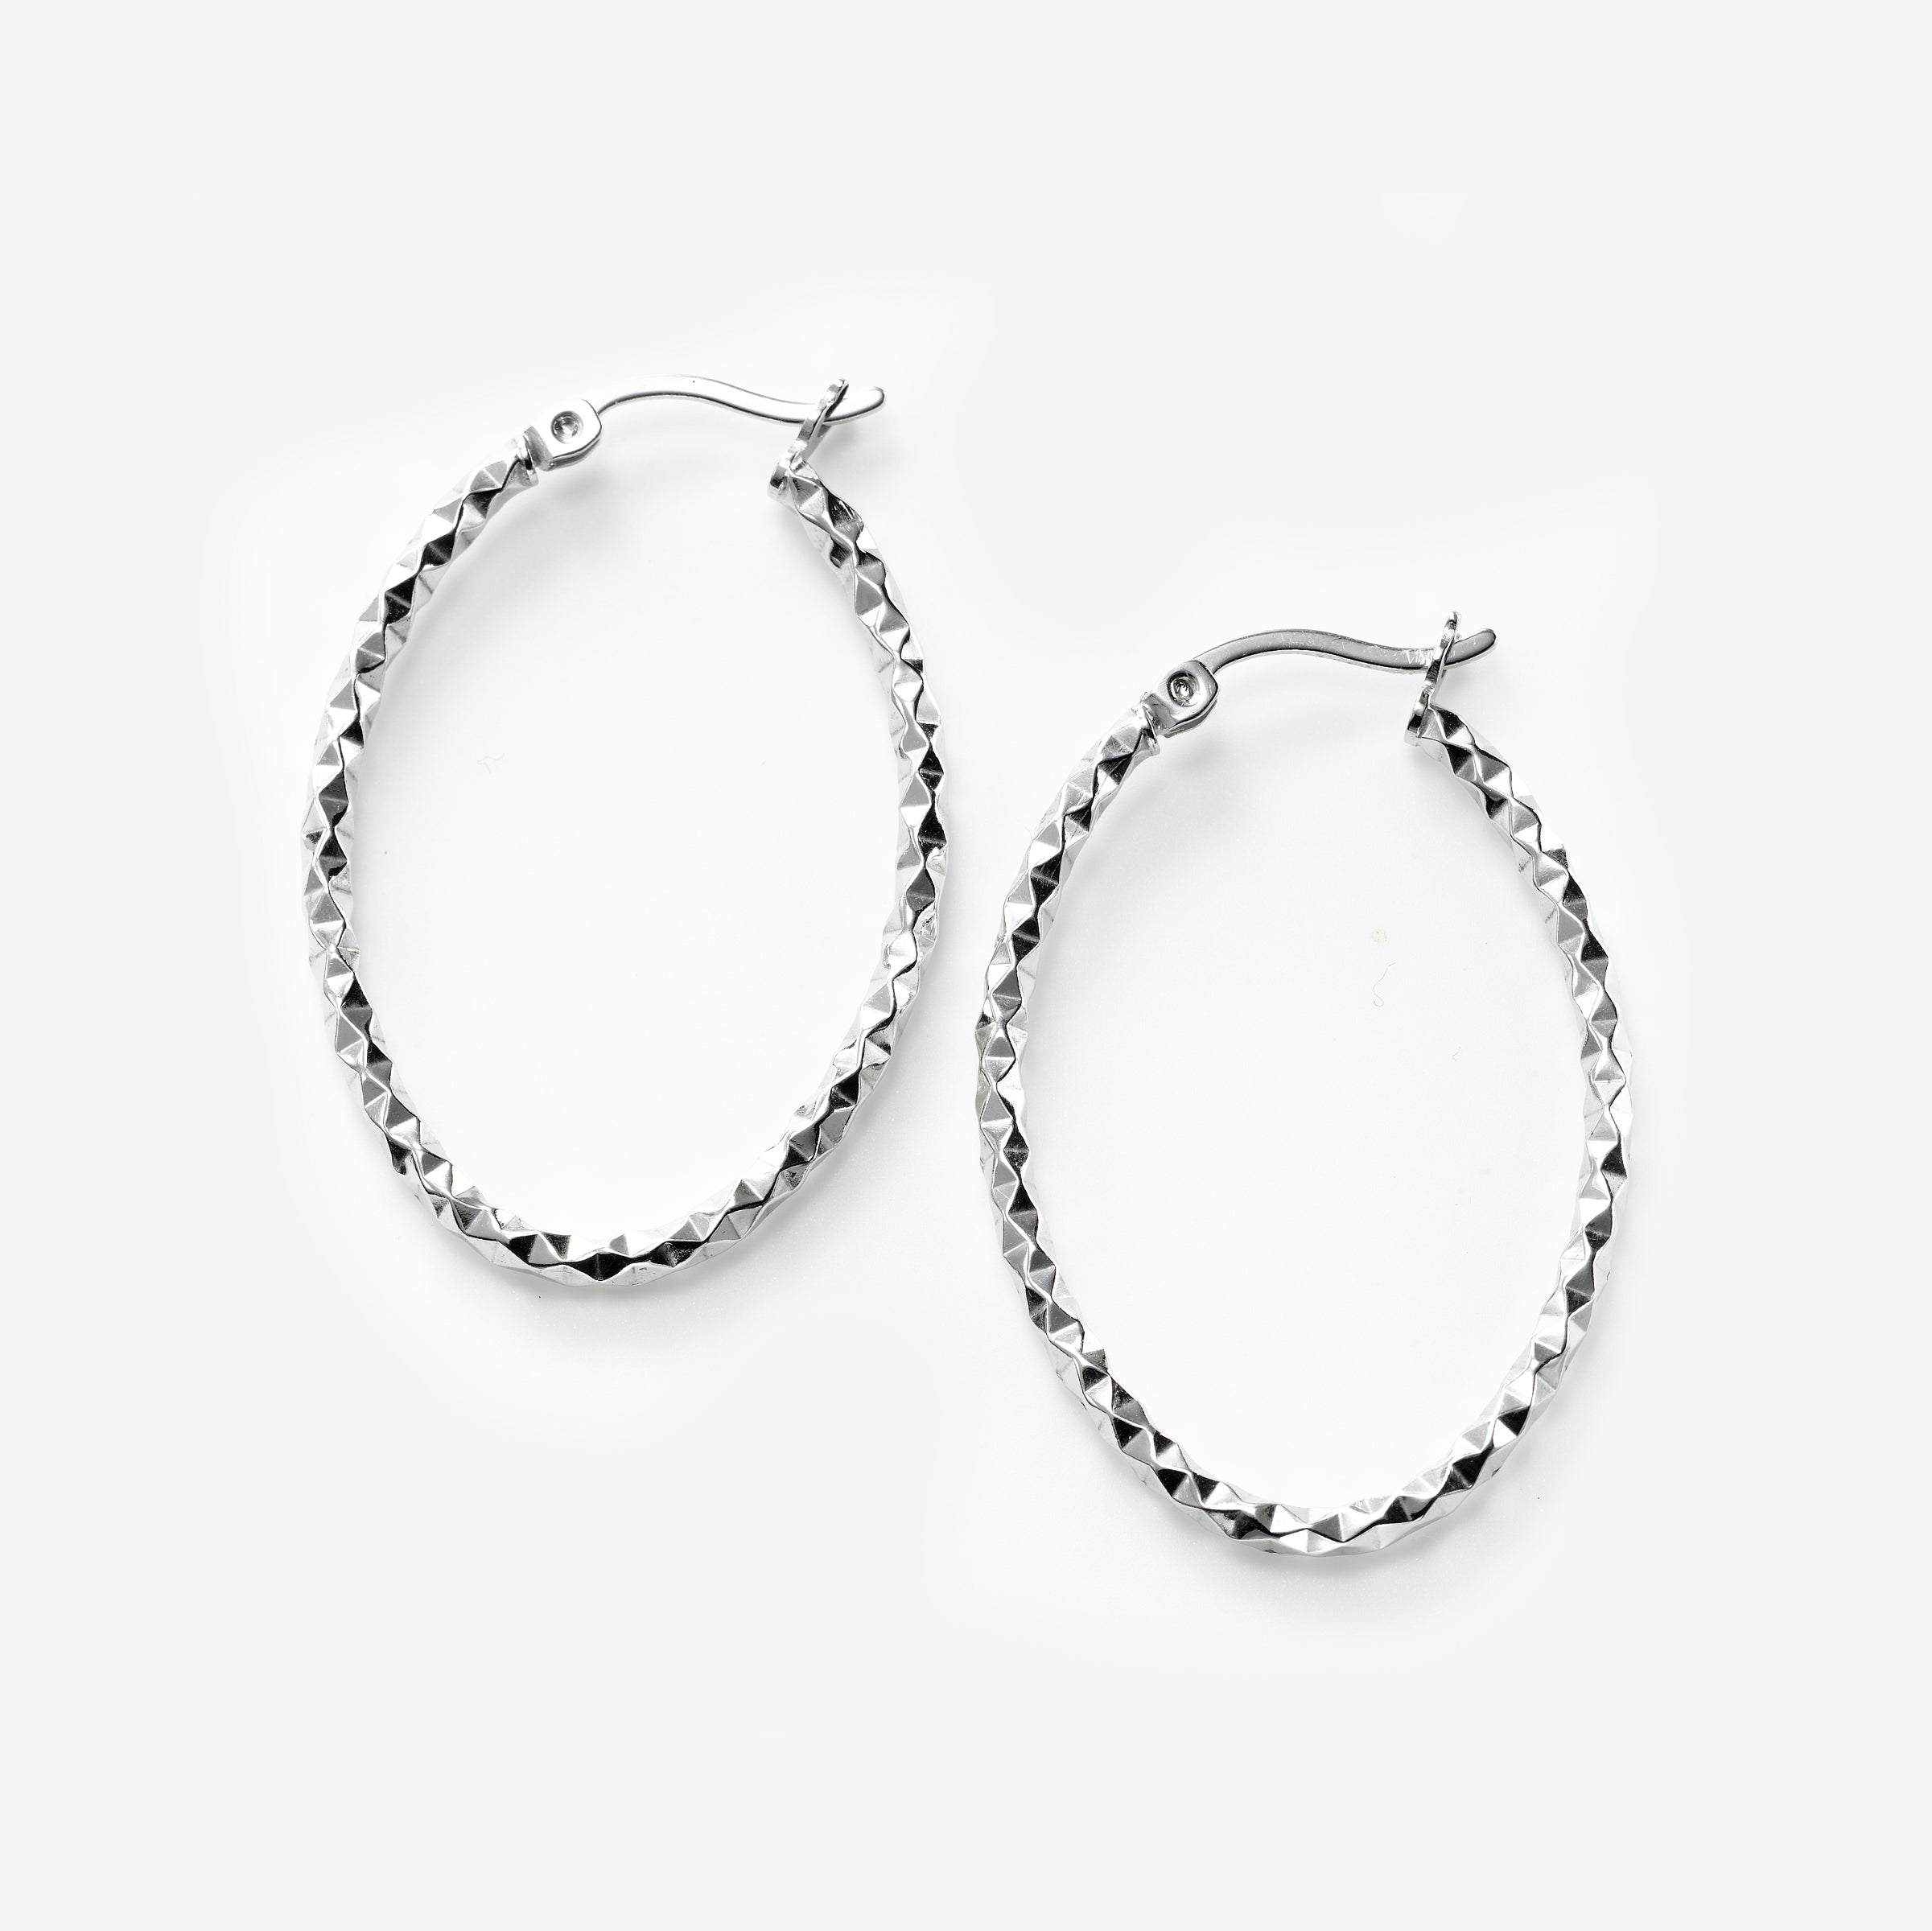 Textured Oval Hoop Earrings, 1.40 Inches, Sterling Silver